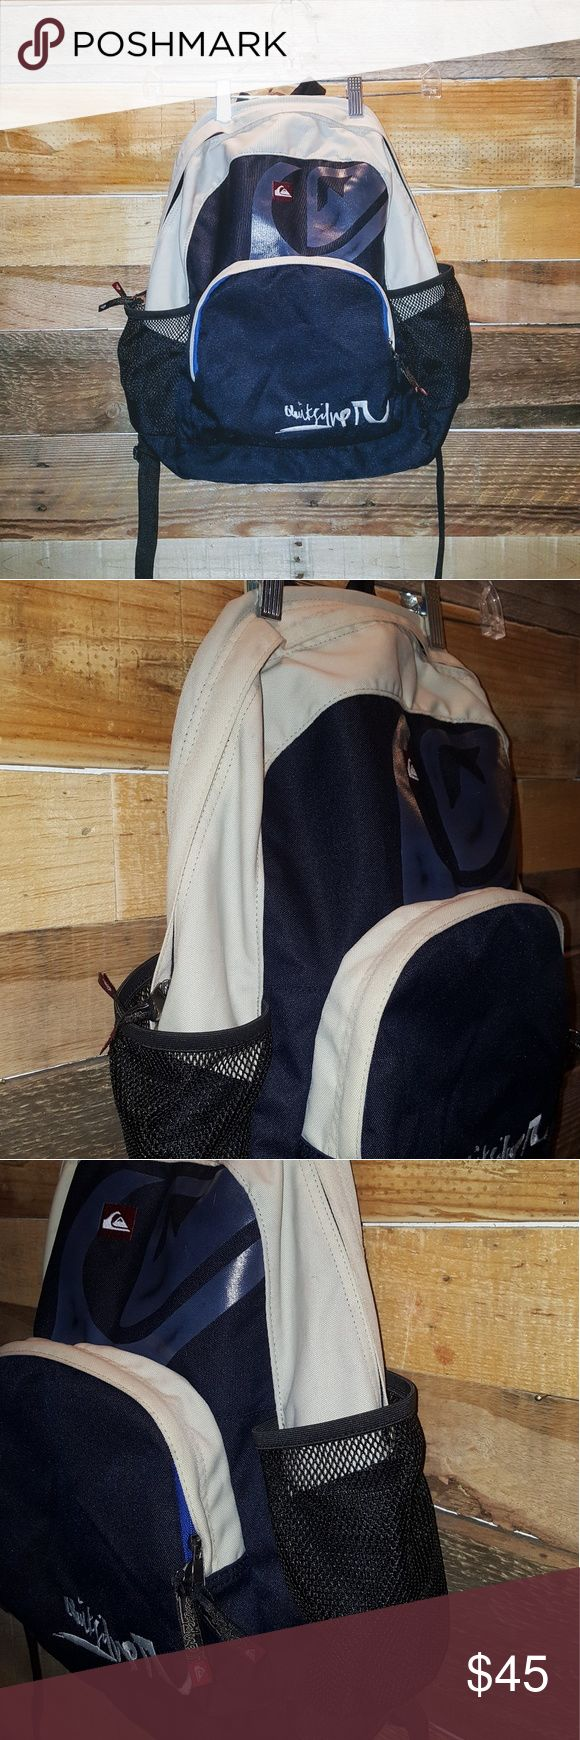 🌟QUIKSILVER NAVY/GRAY BACKPACK🌟 QUIKSILVER COLOR NAVY/GRAY SIZE LARGE EXCELLENT CONDITION COLOR WEAR(ON GRAY PART) CAN BE WASHED GREAT TRENDY BACKPACK 1 LARGE COMPARTMENT 2 SMALLER ZIPPER FRONT COMPARTMENTS MESH BOTTLE HOLDERS ON BOTH SIDES PADDED BACK & STRAPS USE FOR SCHOOL, HIKES,TRIPS,OUTTINGS HOLDS A LOT OF STUFF *NO TRADES NO RETURNS ASK QUESTIONS PLEASE* Quiksilver Bags Backpacks